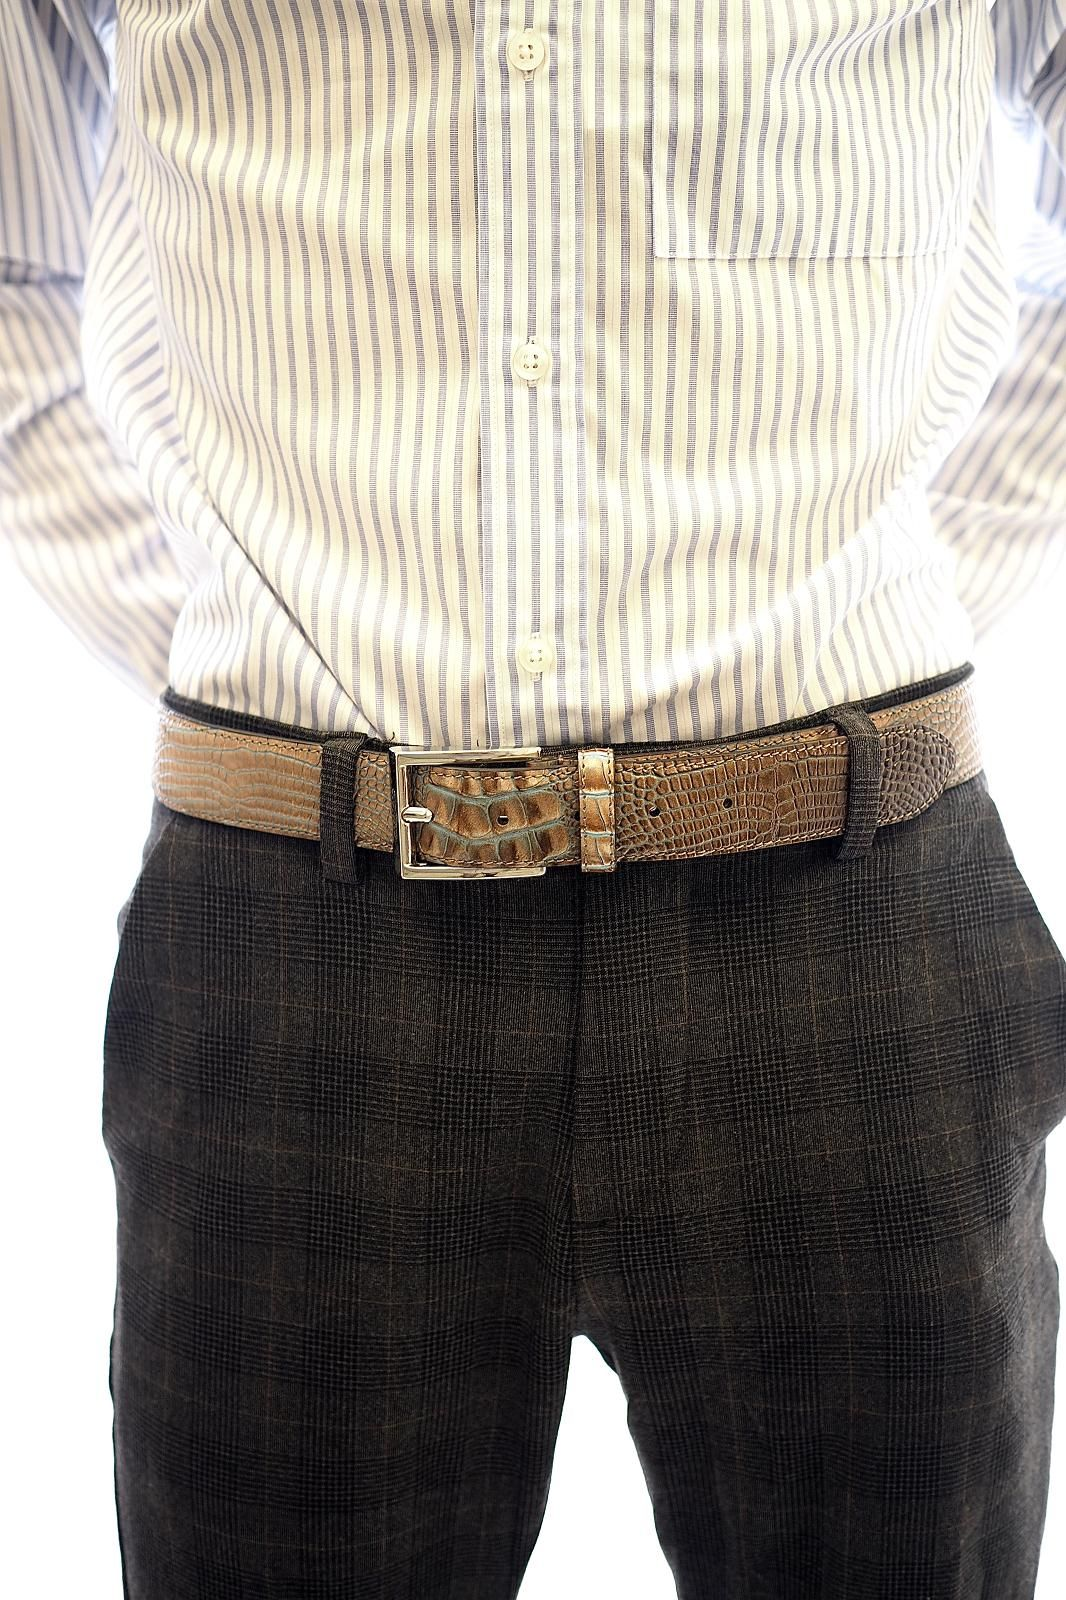 Giorgio 1958 ceinture Naturel hommes (GG1958-Ceinture  - 1023 ceinture 20 snake cognac/) - Marine | Much more than shoes